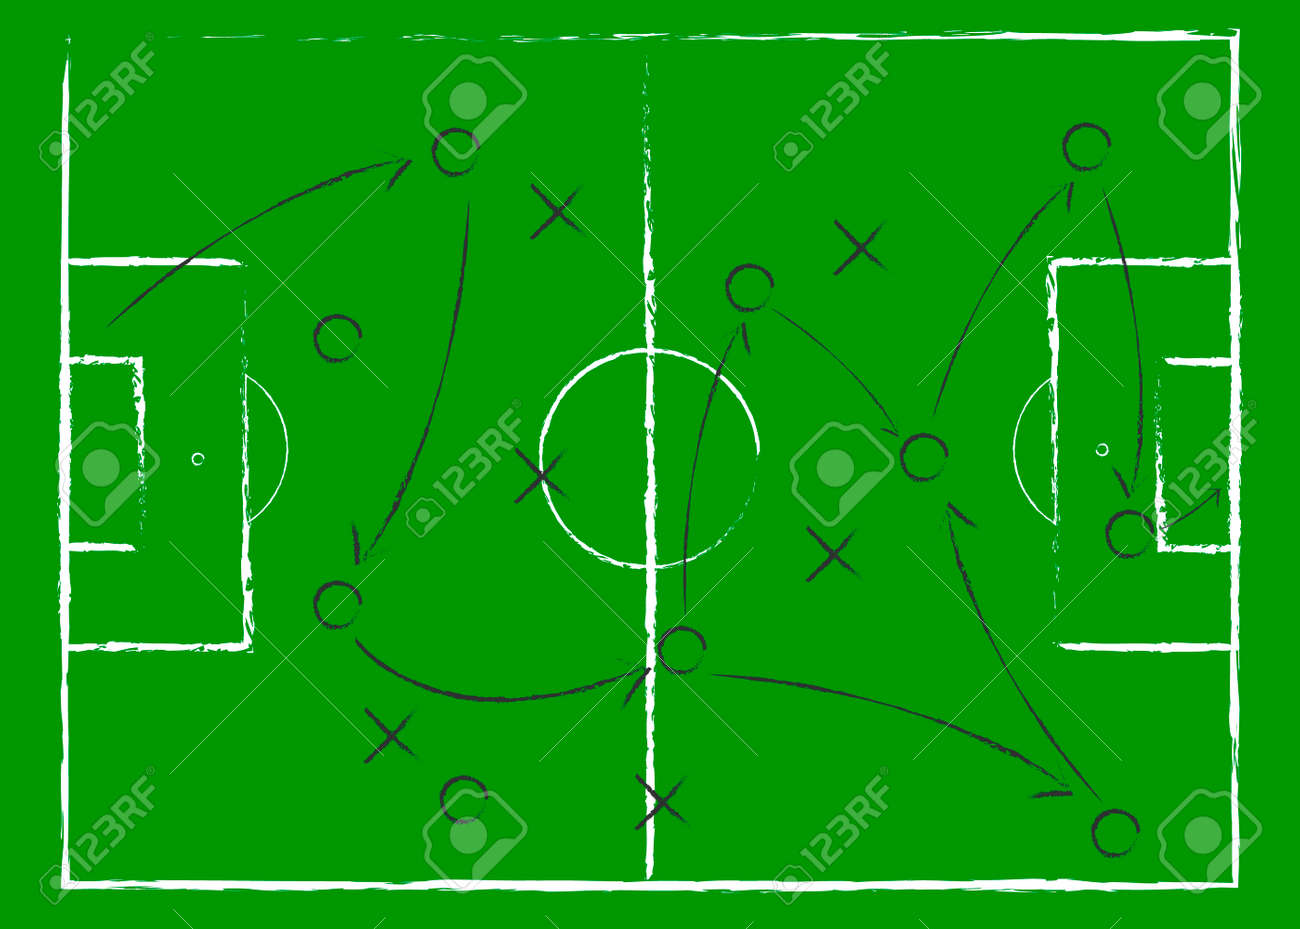 Soccer game tactical scheme. The scheme of the game. Strategy. Tactics. On the chalkboard. For your design. Vector chalk graphic on black board - 153586575